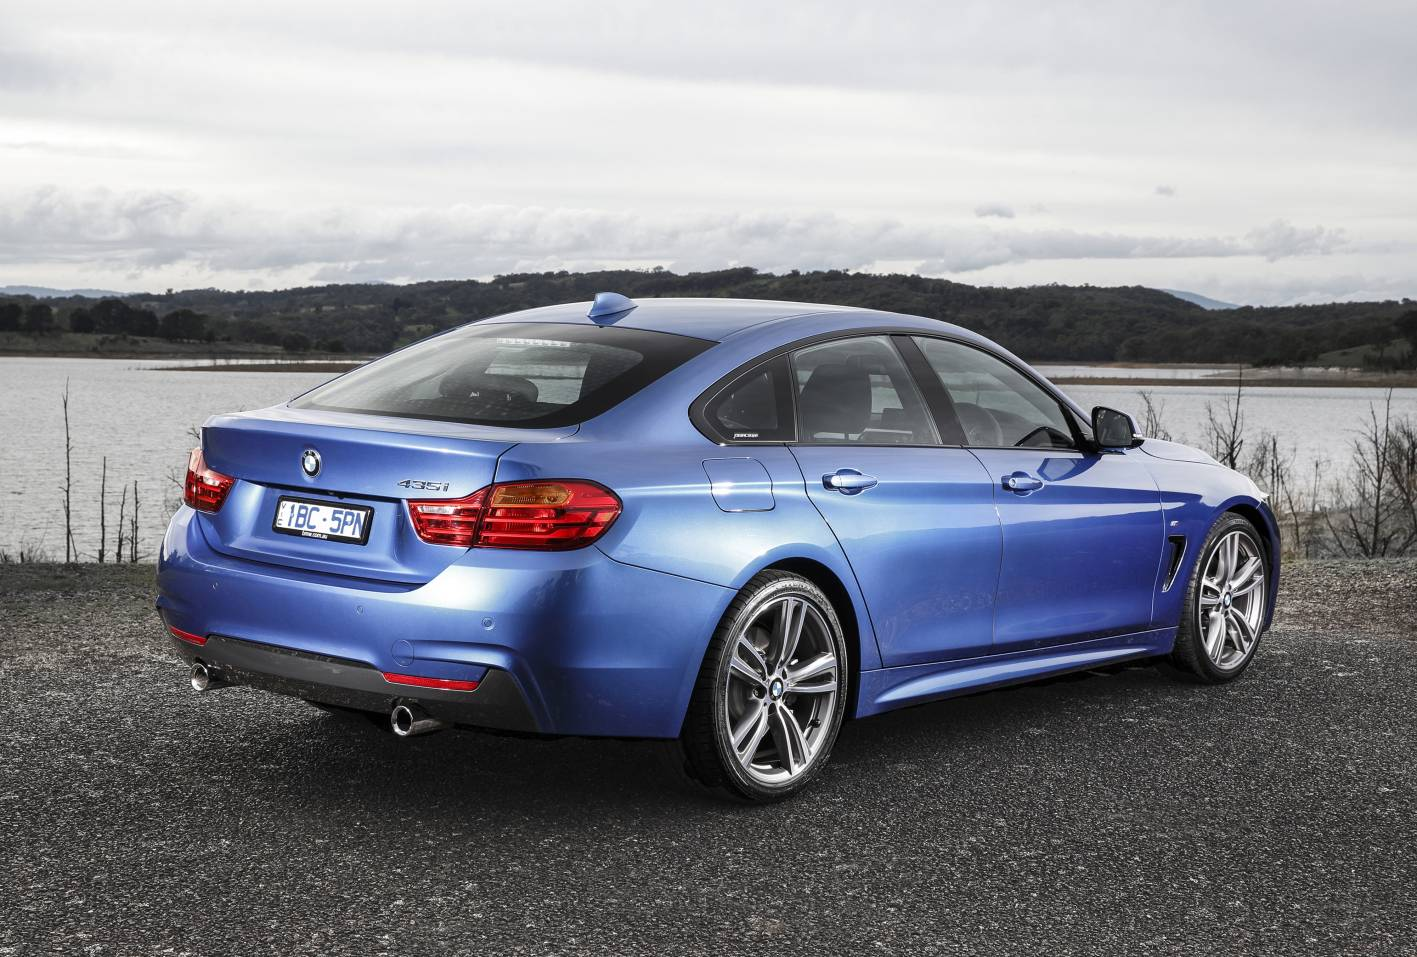 Bmw 4 Series Gran Coupe Dimensions Bmw Cars News 4 Series Gran Coupé Pricing And